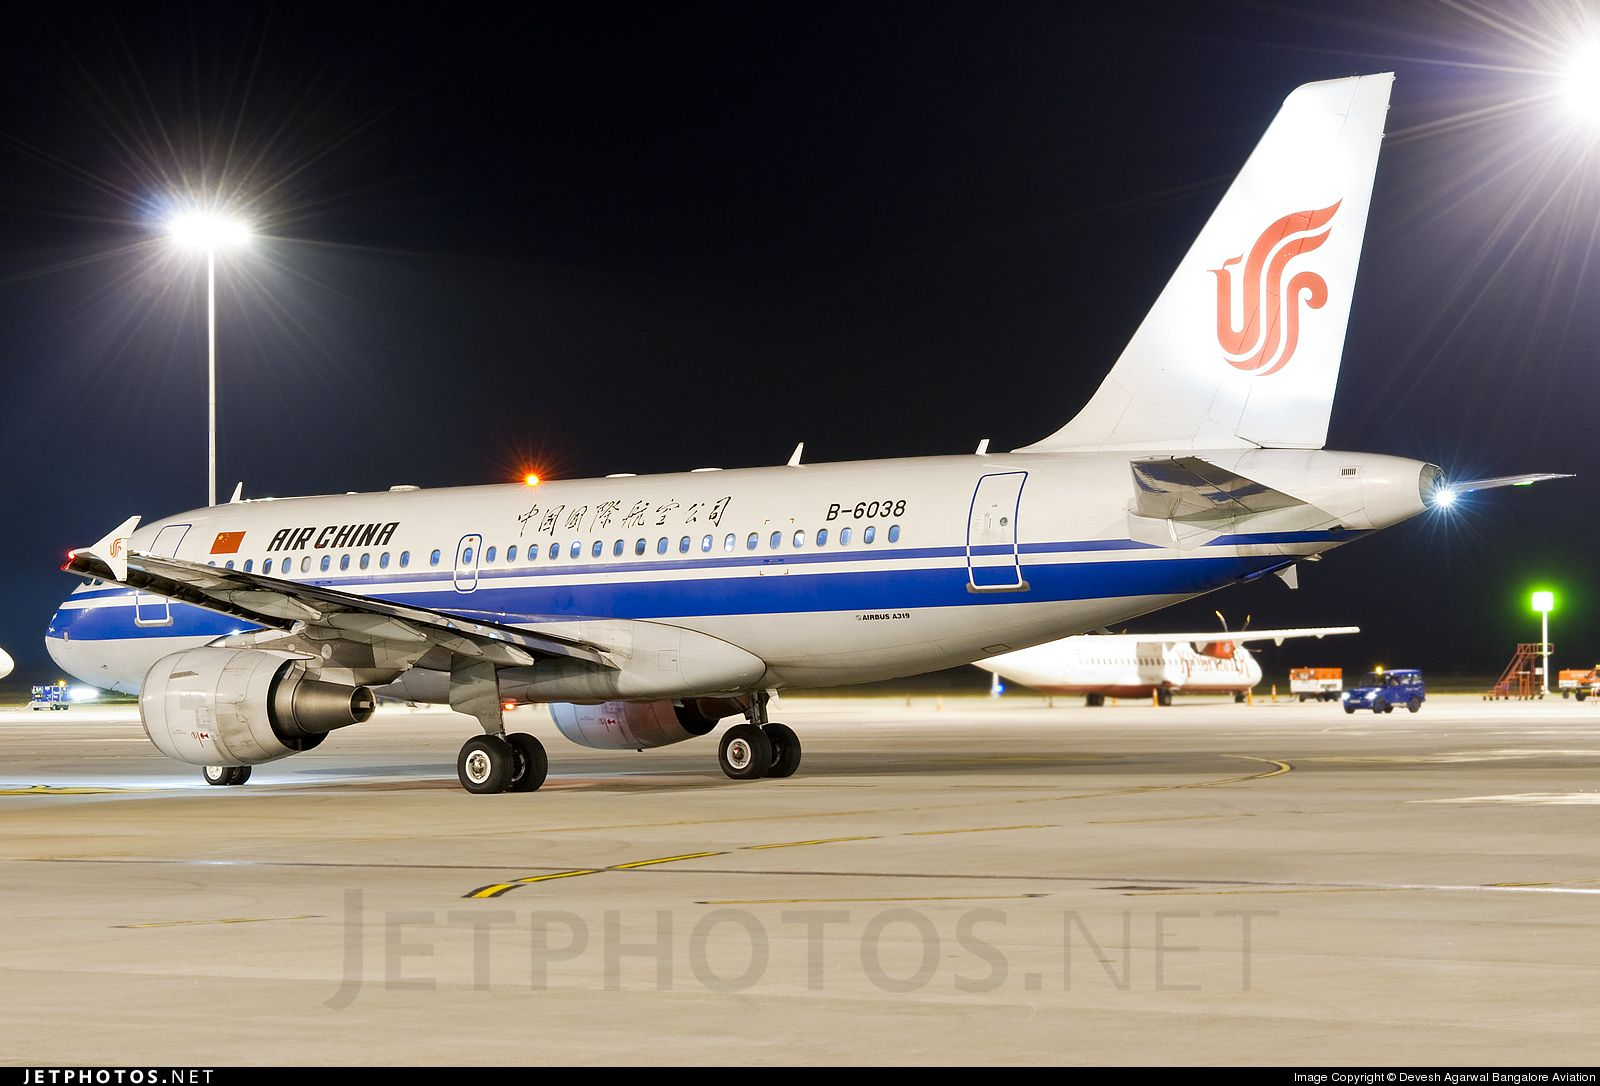 Air China's baby Airbus A319115 B6038 which used to